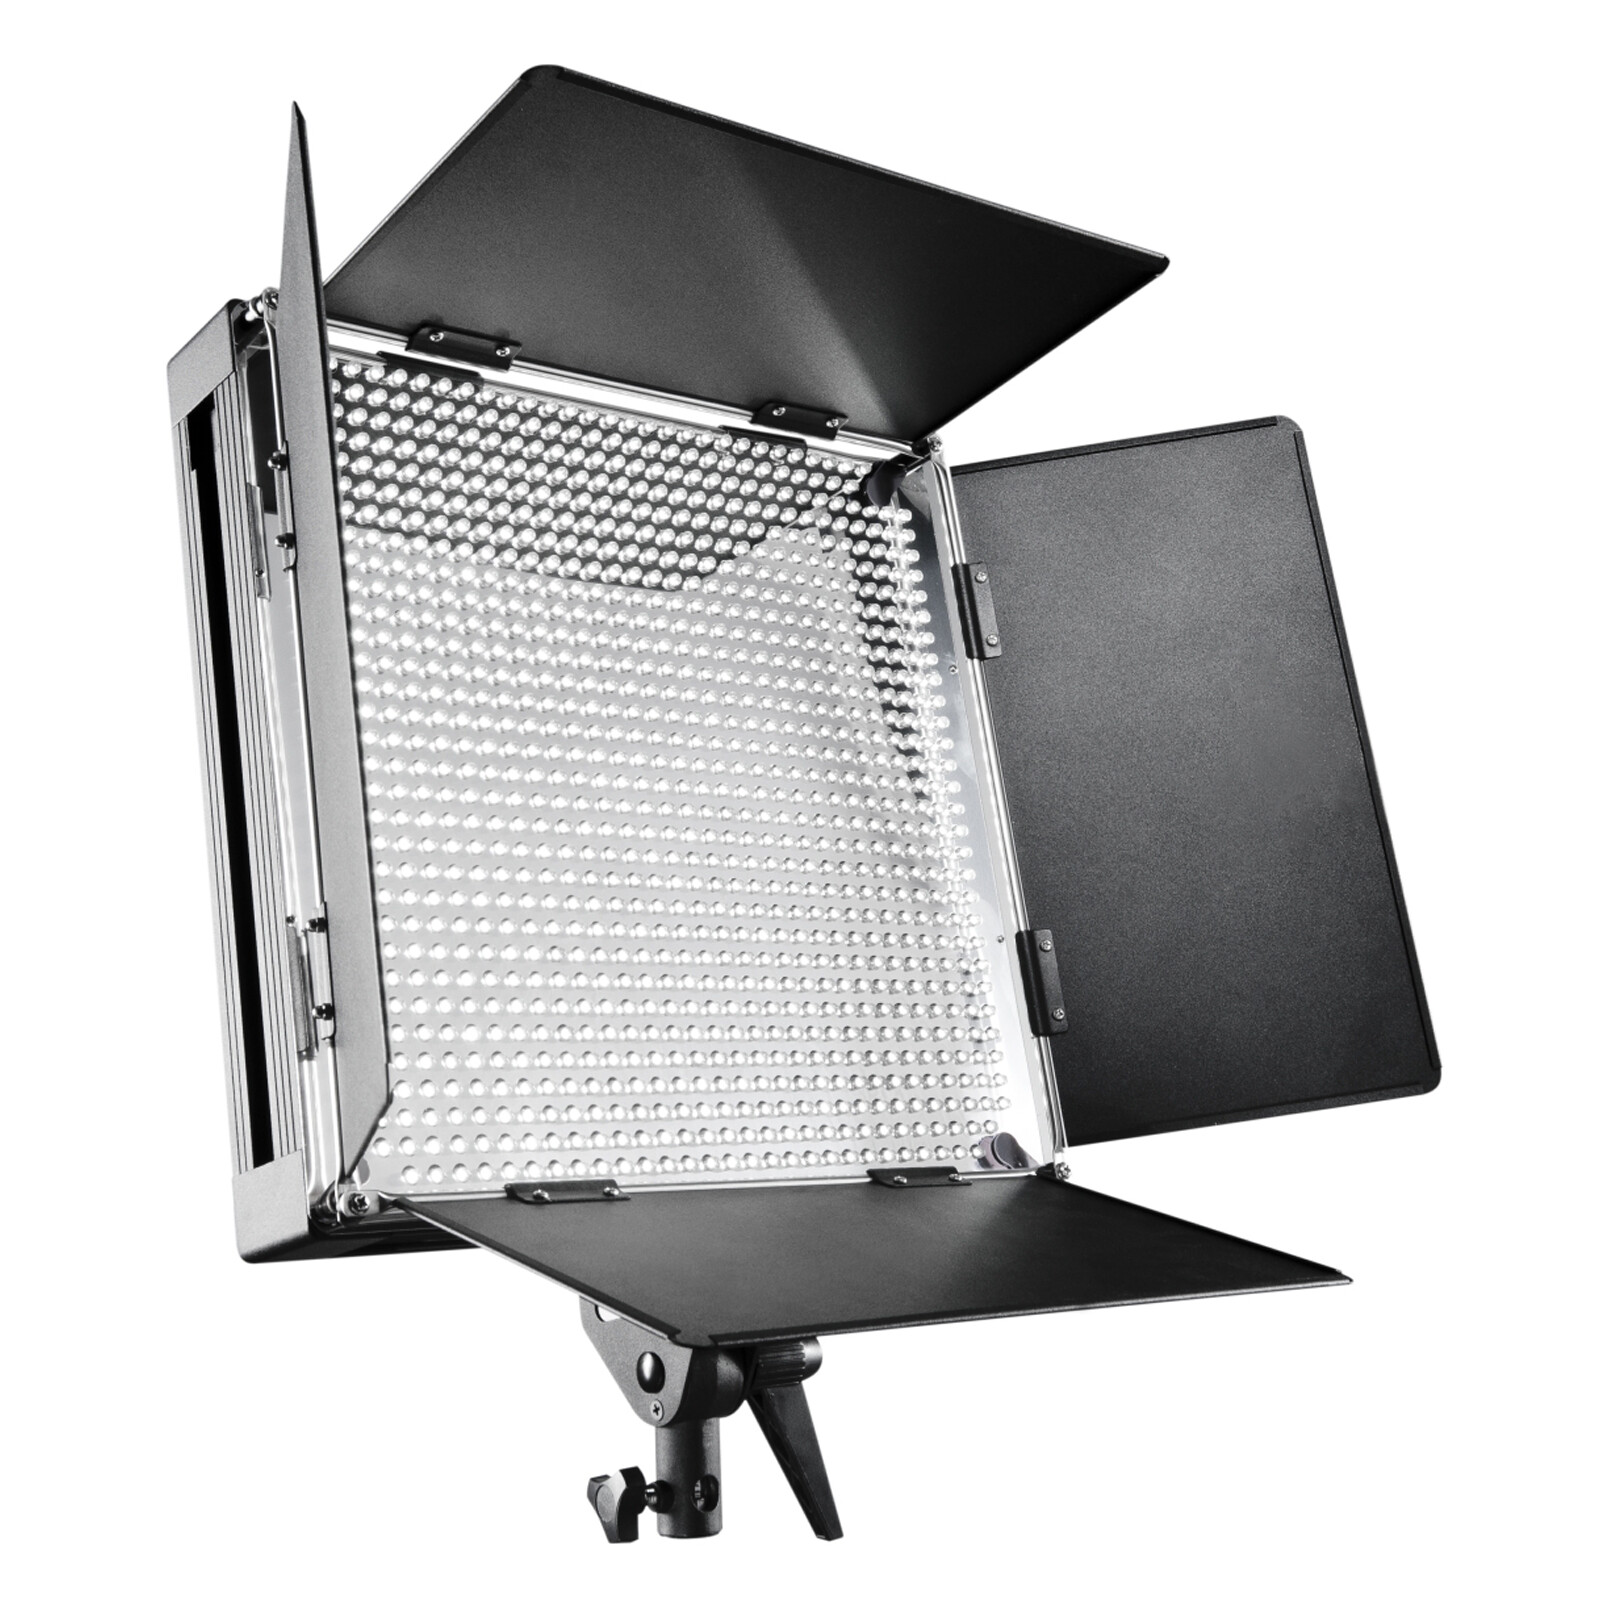 walimex pro LED 1000 Dimmbare Flächenleuchte